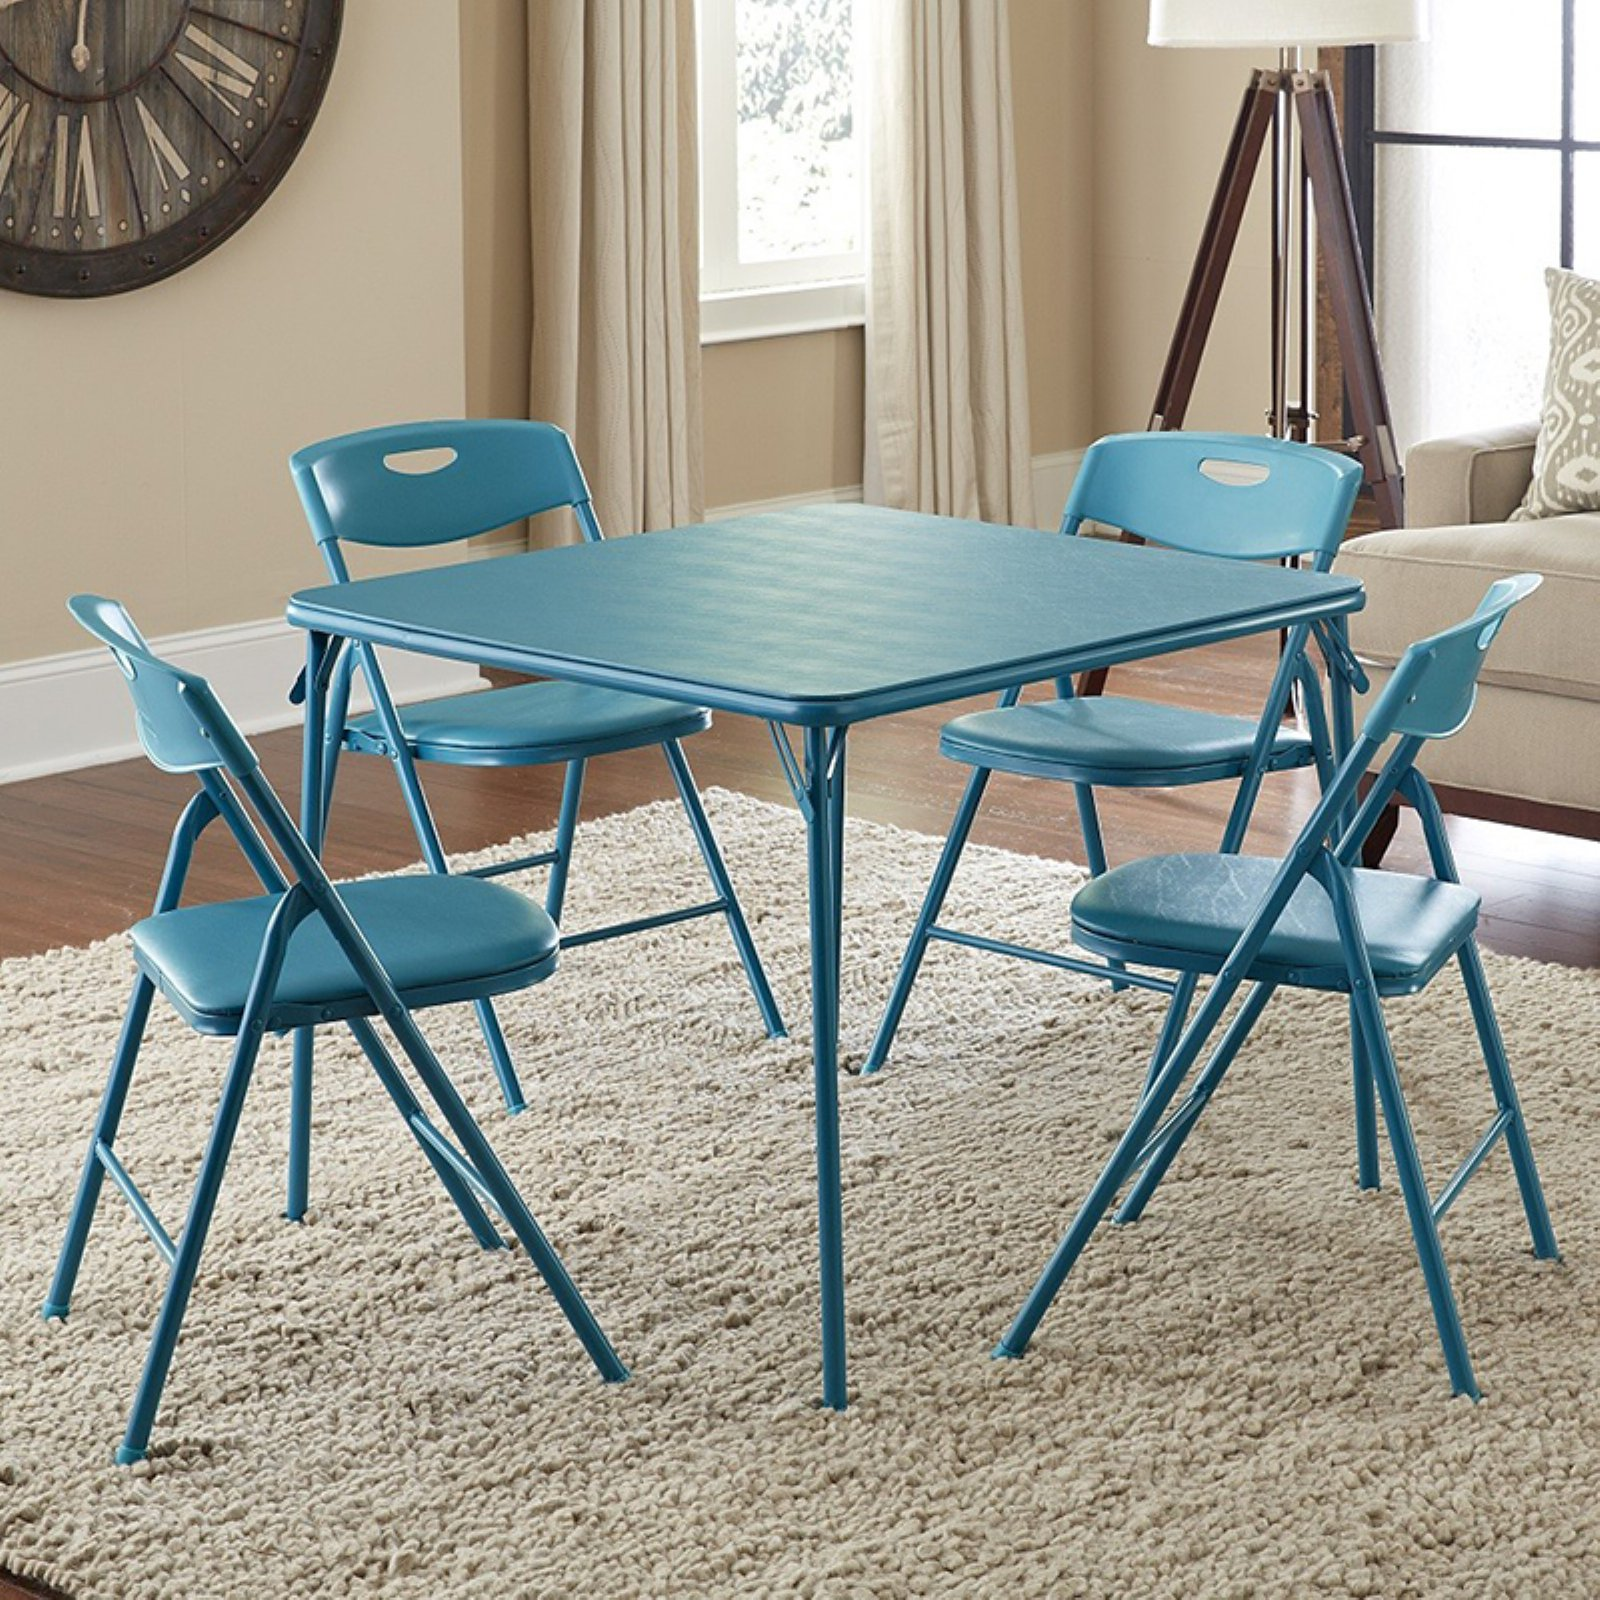 Cosco 5-Piece Folding Table and Chair Set, Multiple Colors - Walmart.com